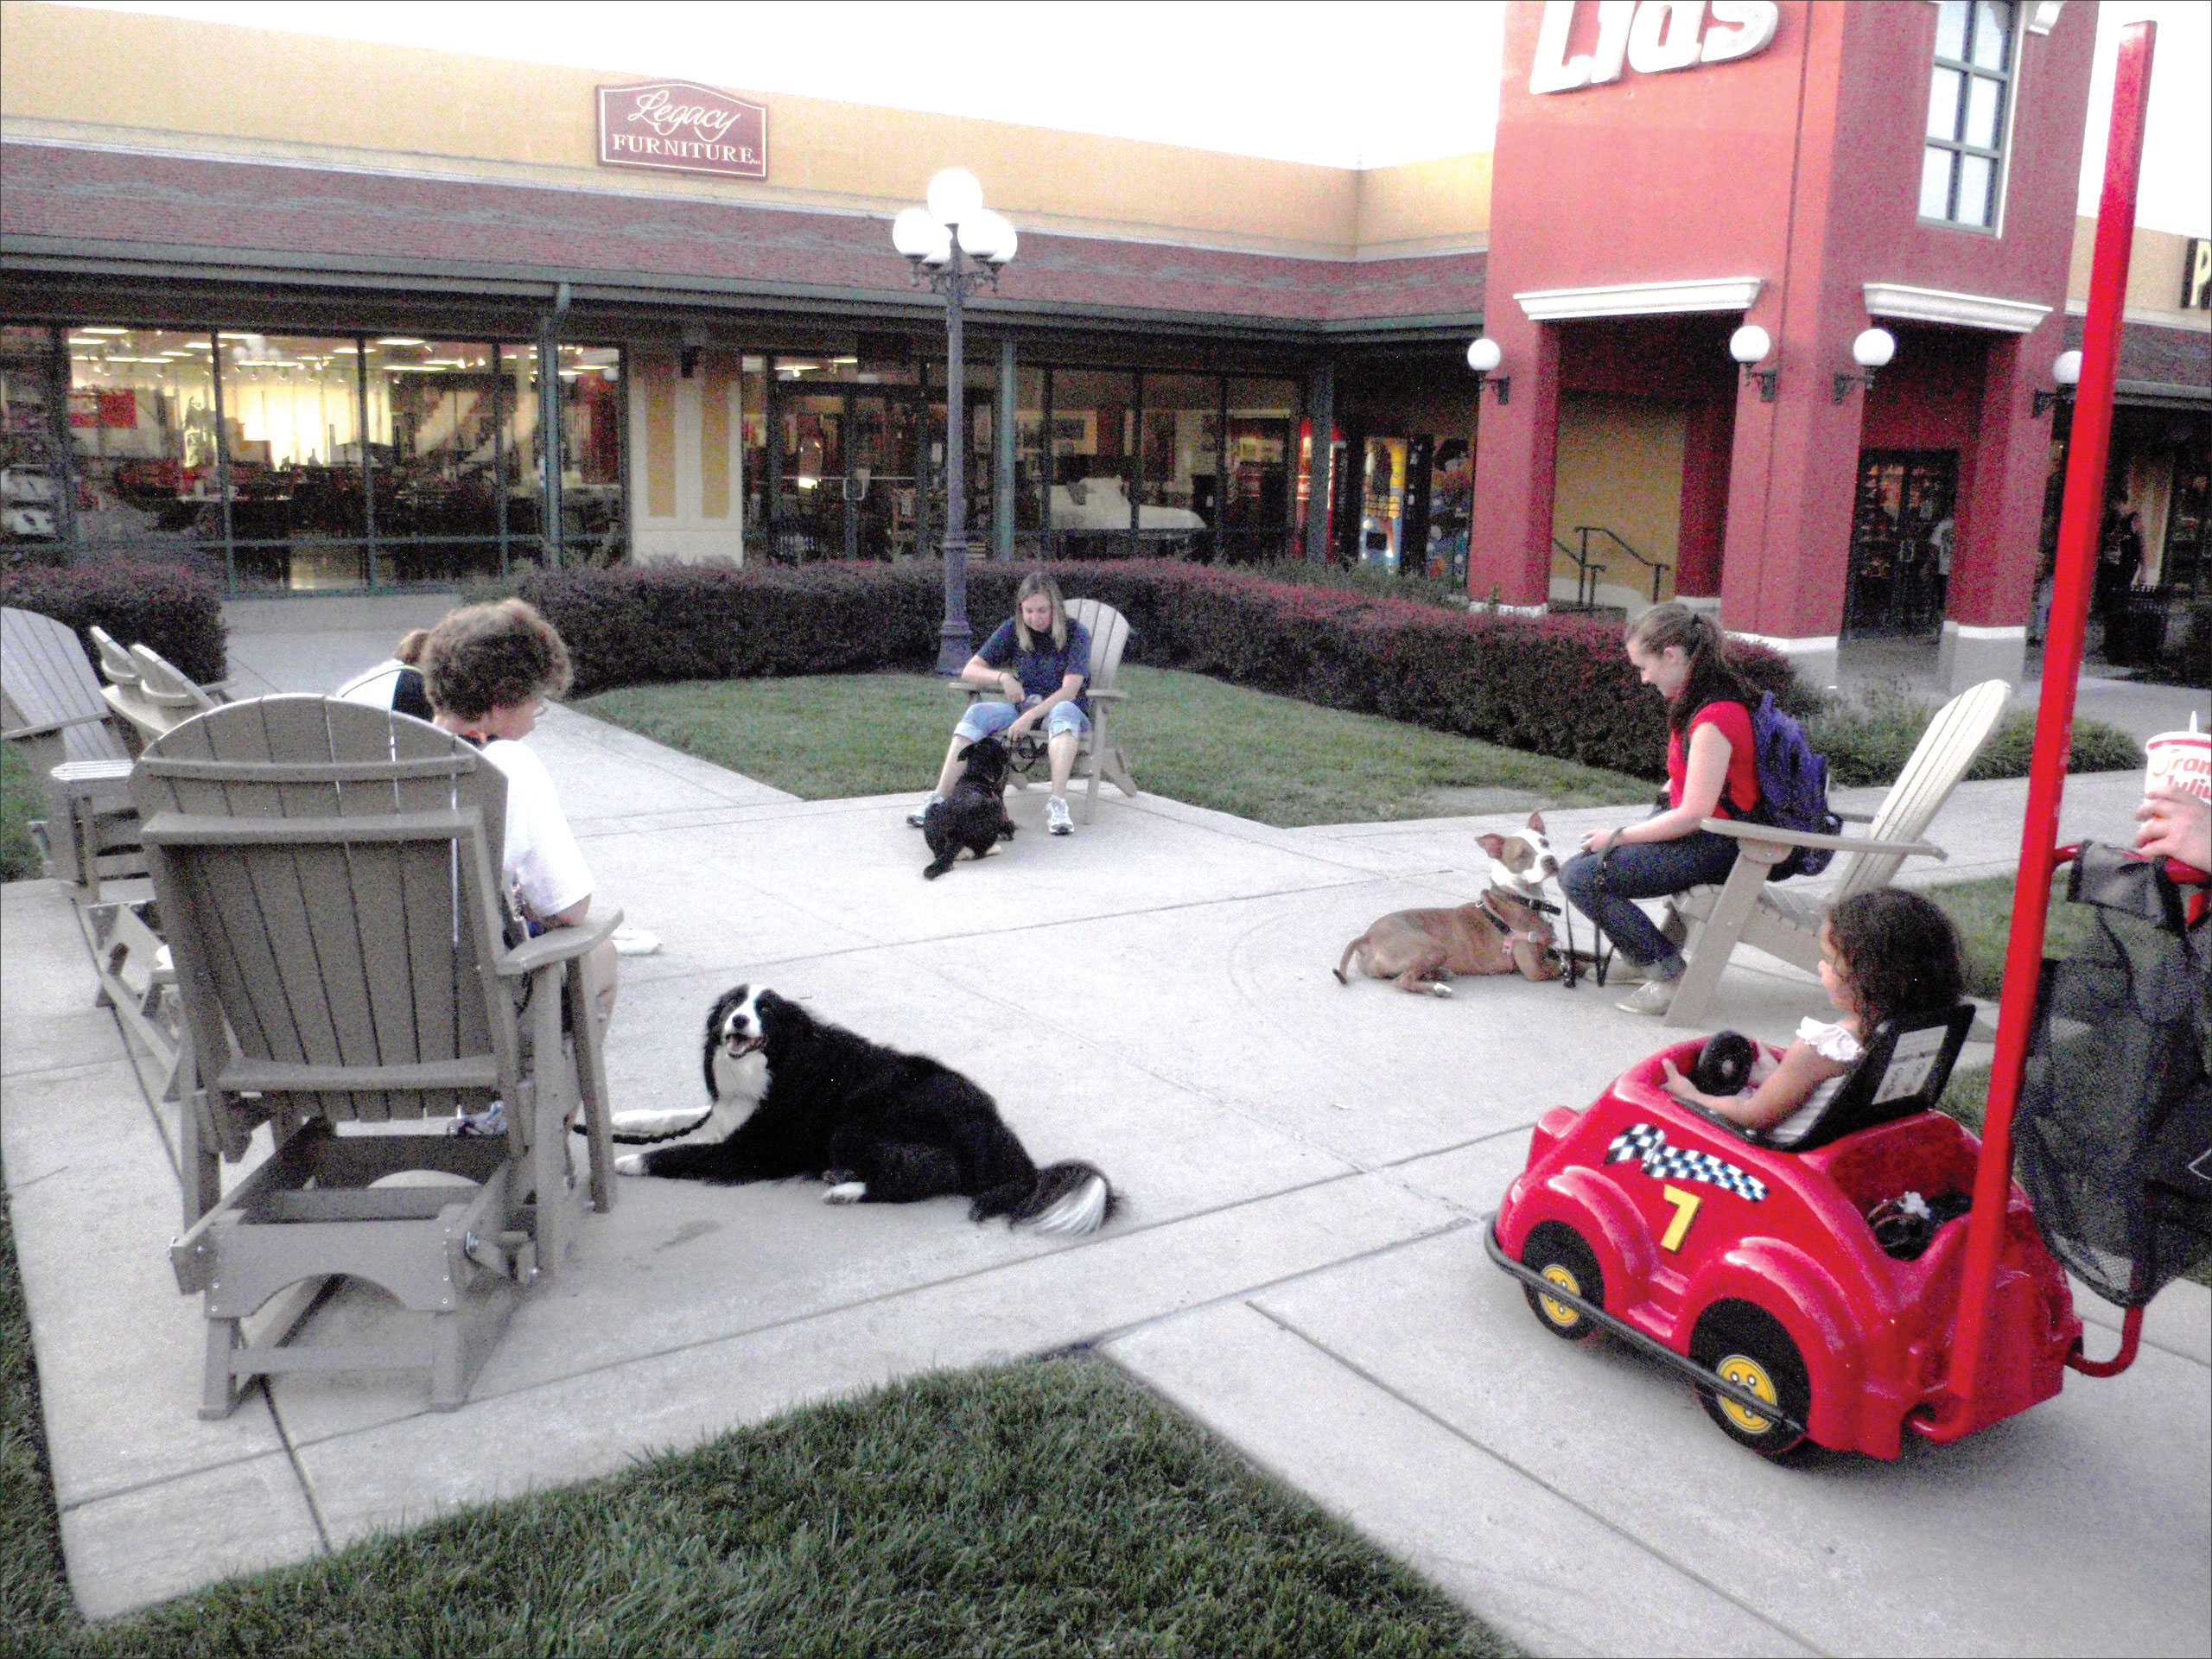 dog relaxing in crowded area